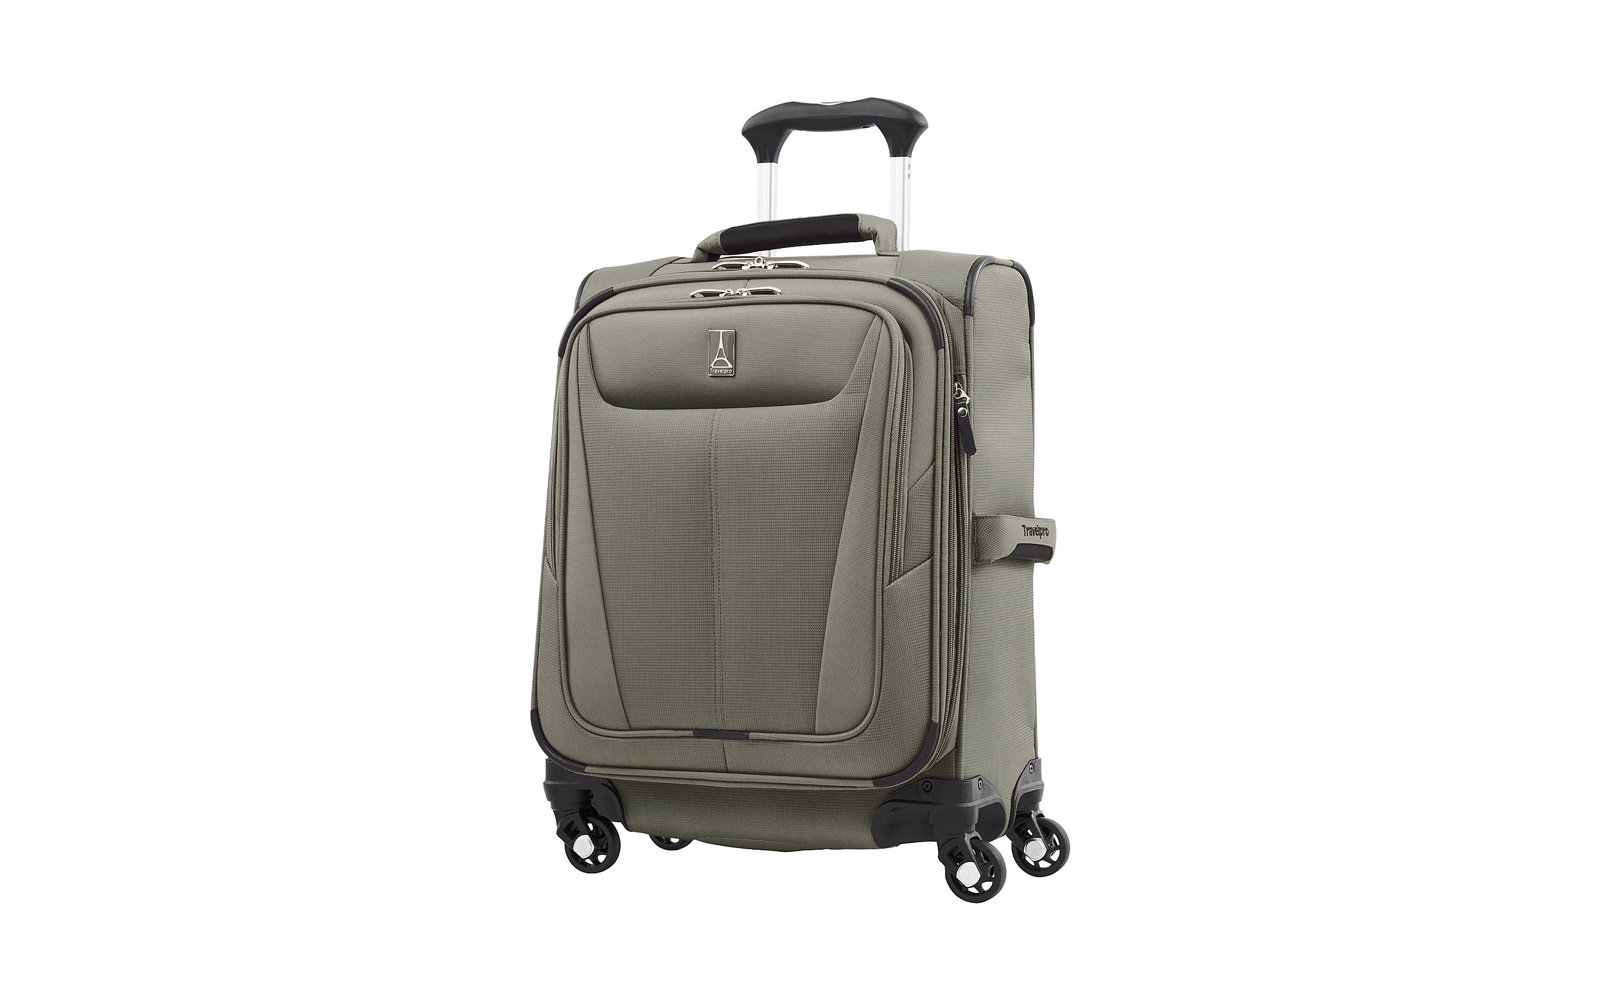 Lightweight Cabin Luggage The Best Lightweight Luggage You Can Buy In 2019 Travel Leisure